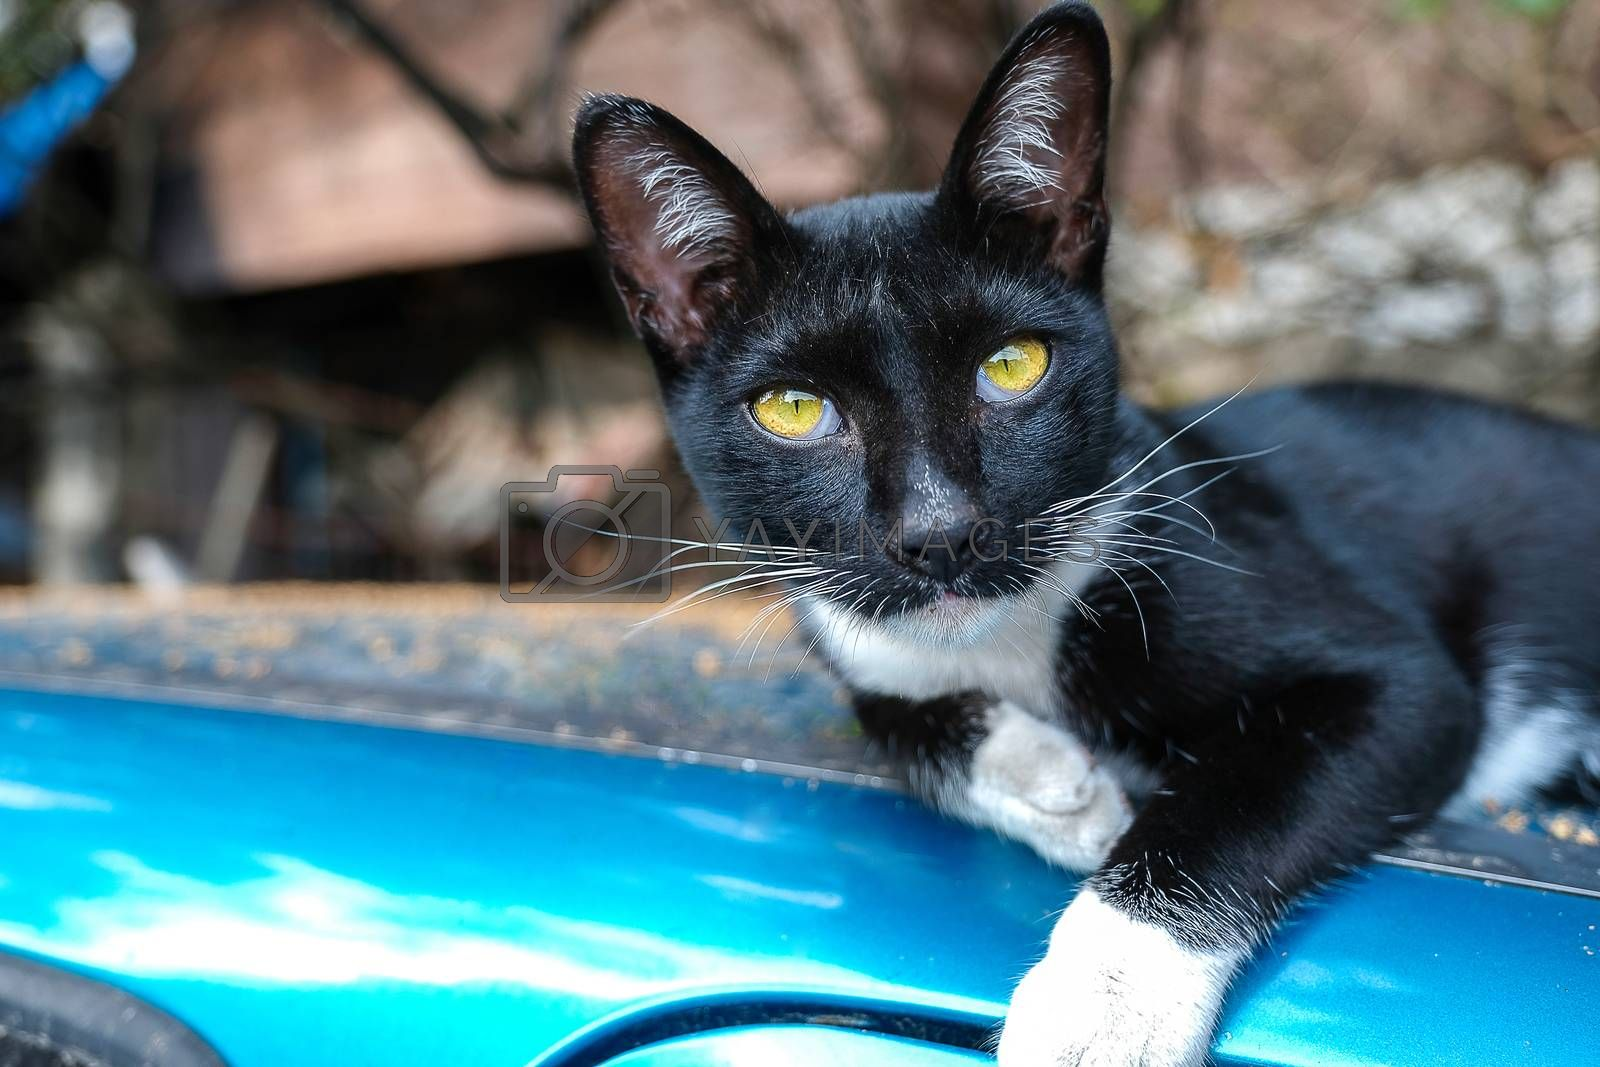 a portrait of a black street cat by Nawoot